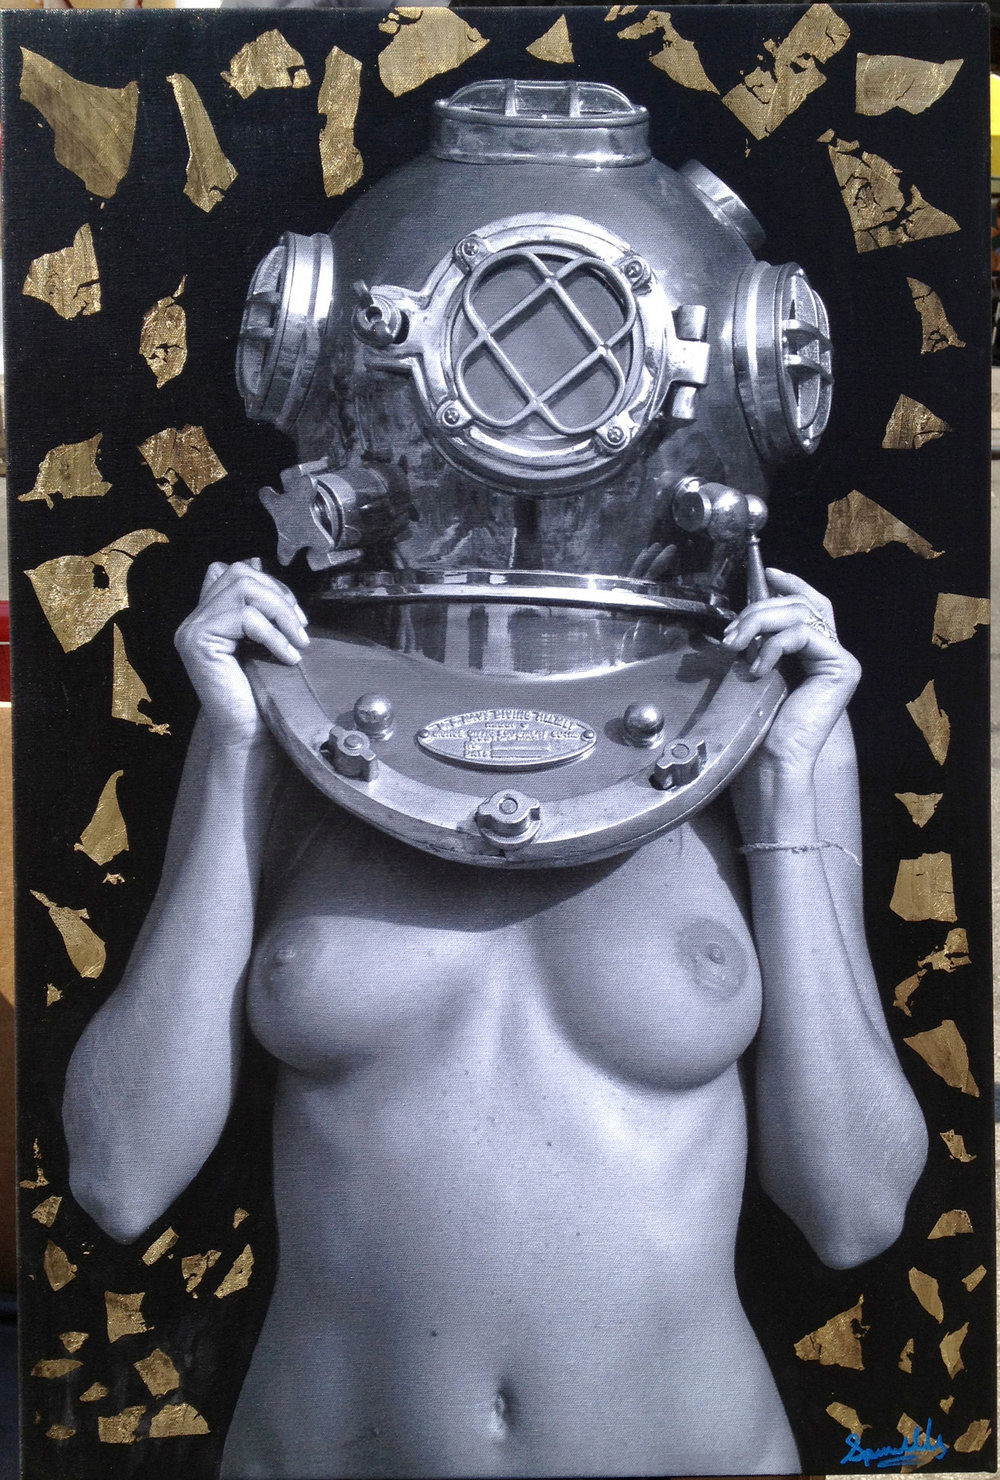 Diver UP! Golden Atomicus. 20x30 on canvas with Gold Leaf, Acrylic, Oil and medium. Septmeber 2012.